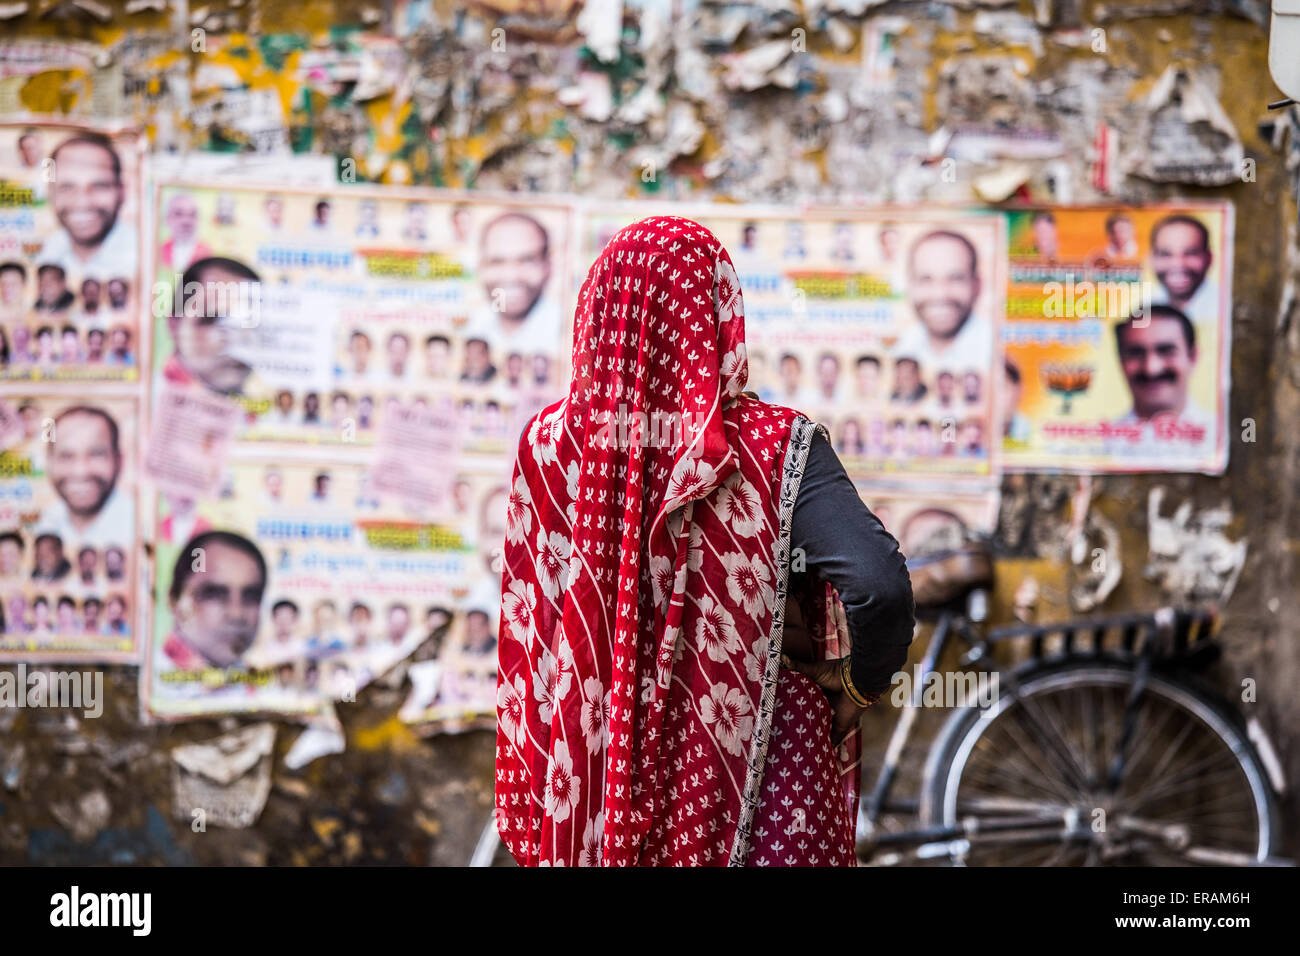 Indian woman standing in front of voting posters in Delhi, India - Stock Image